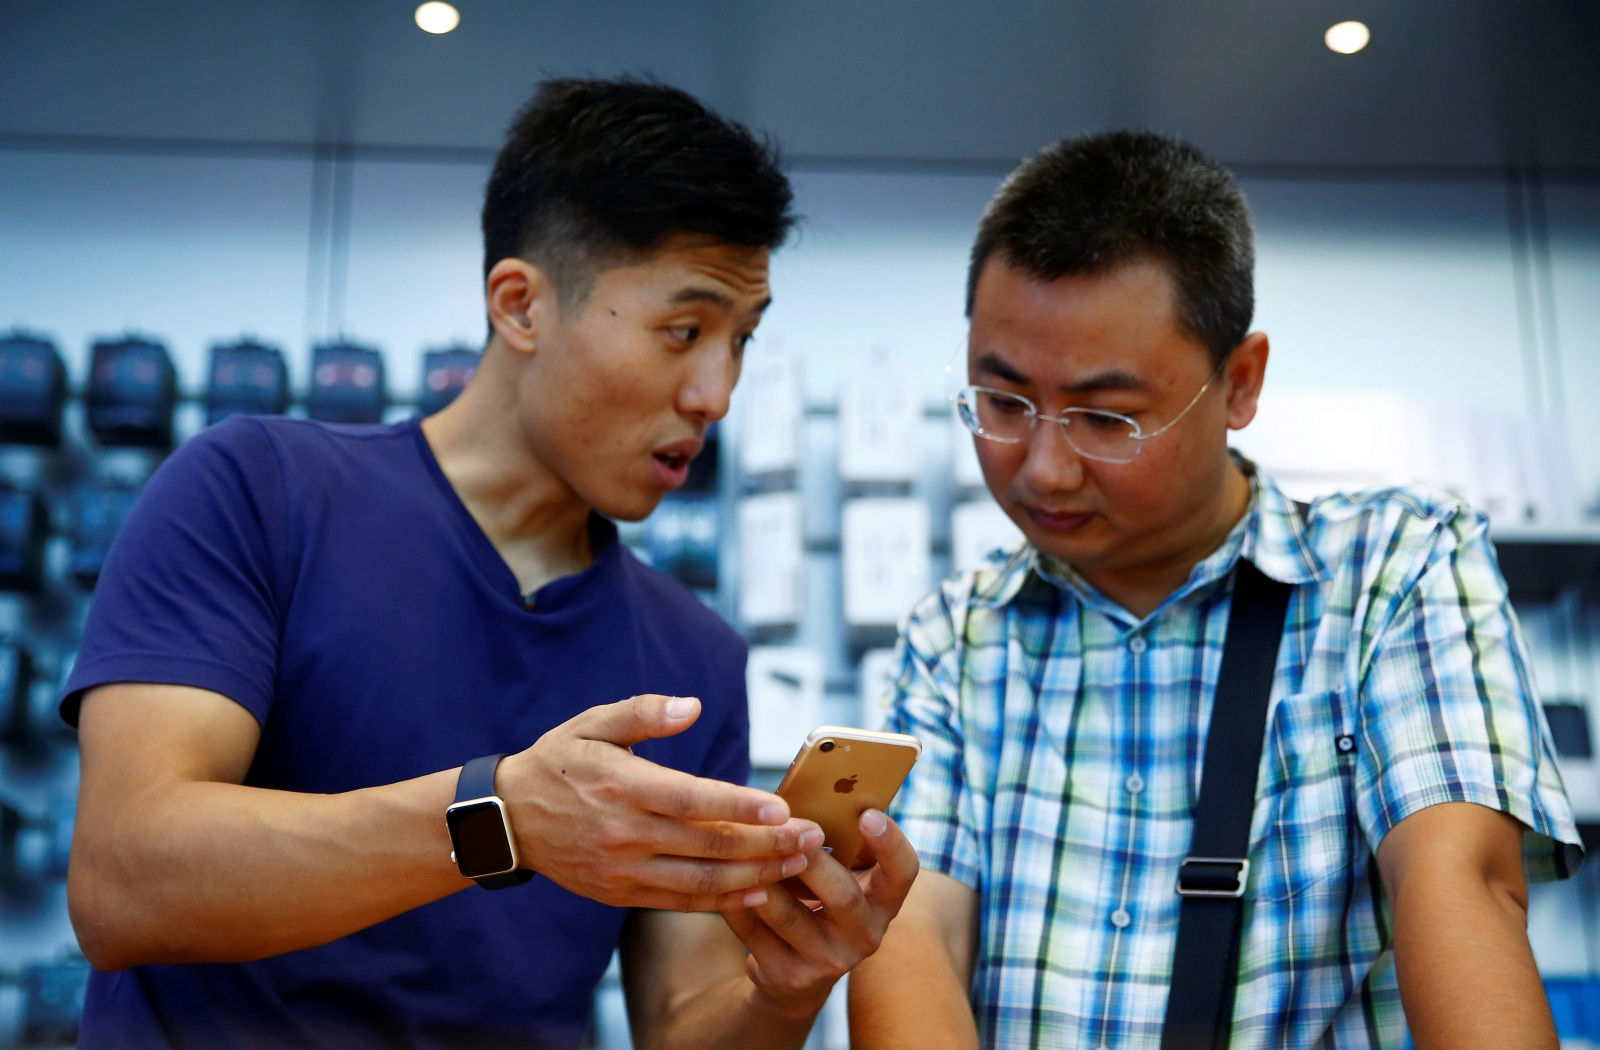 China Apple Store employee explains iPhone 7